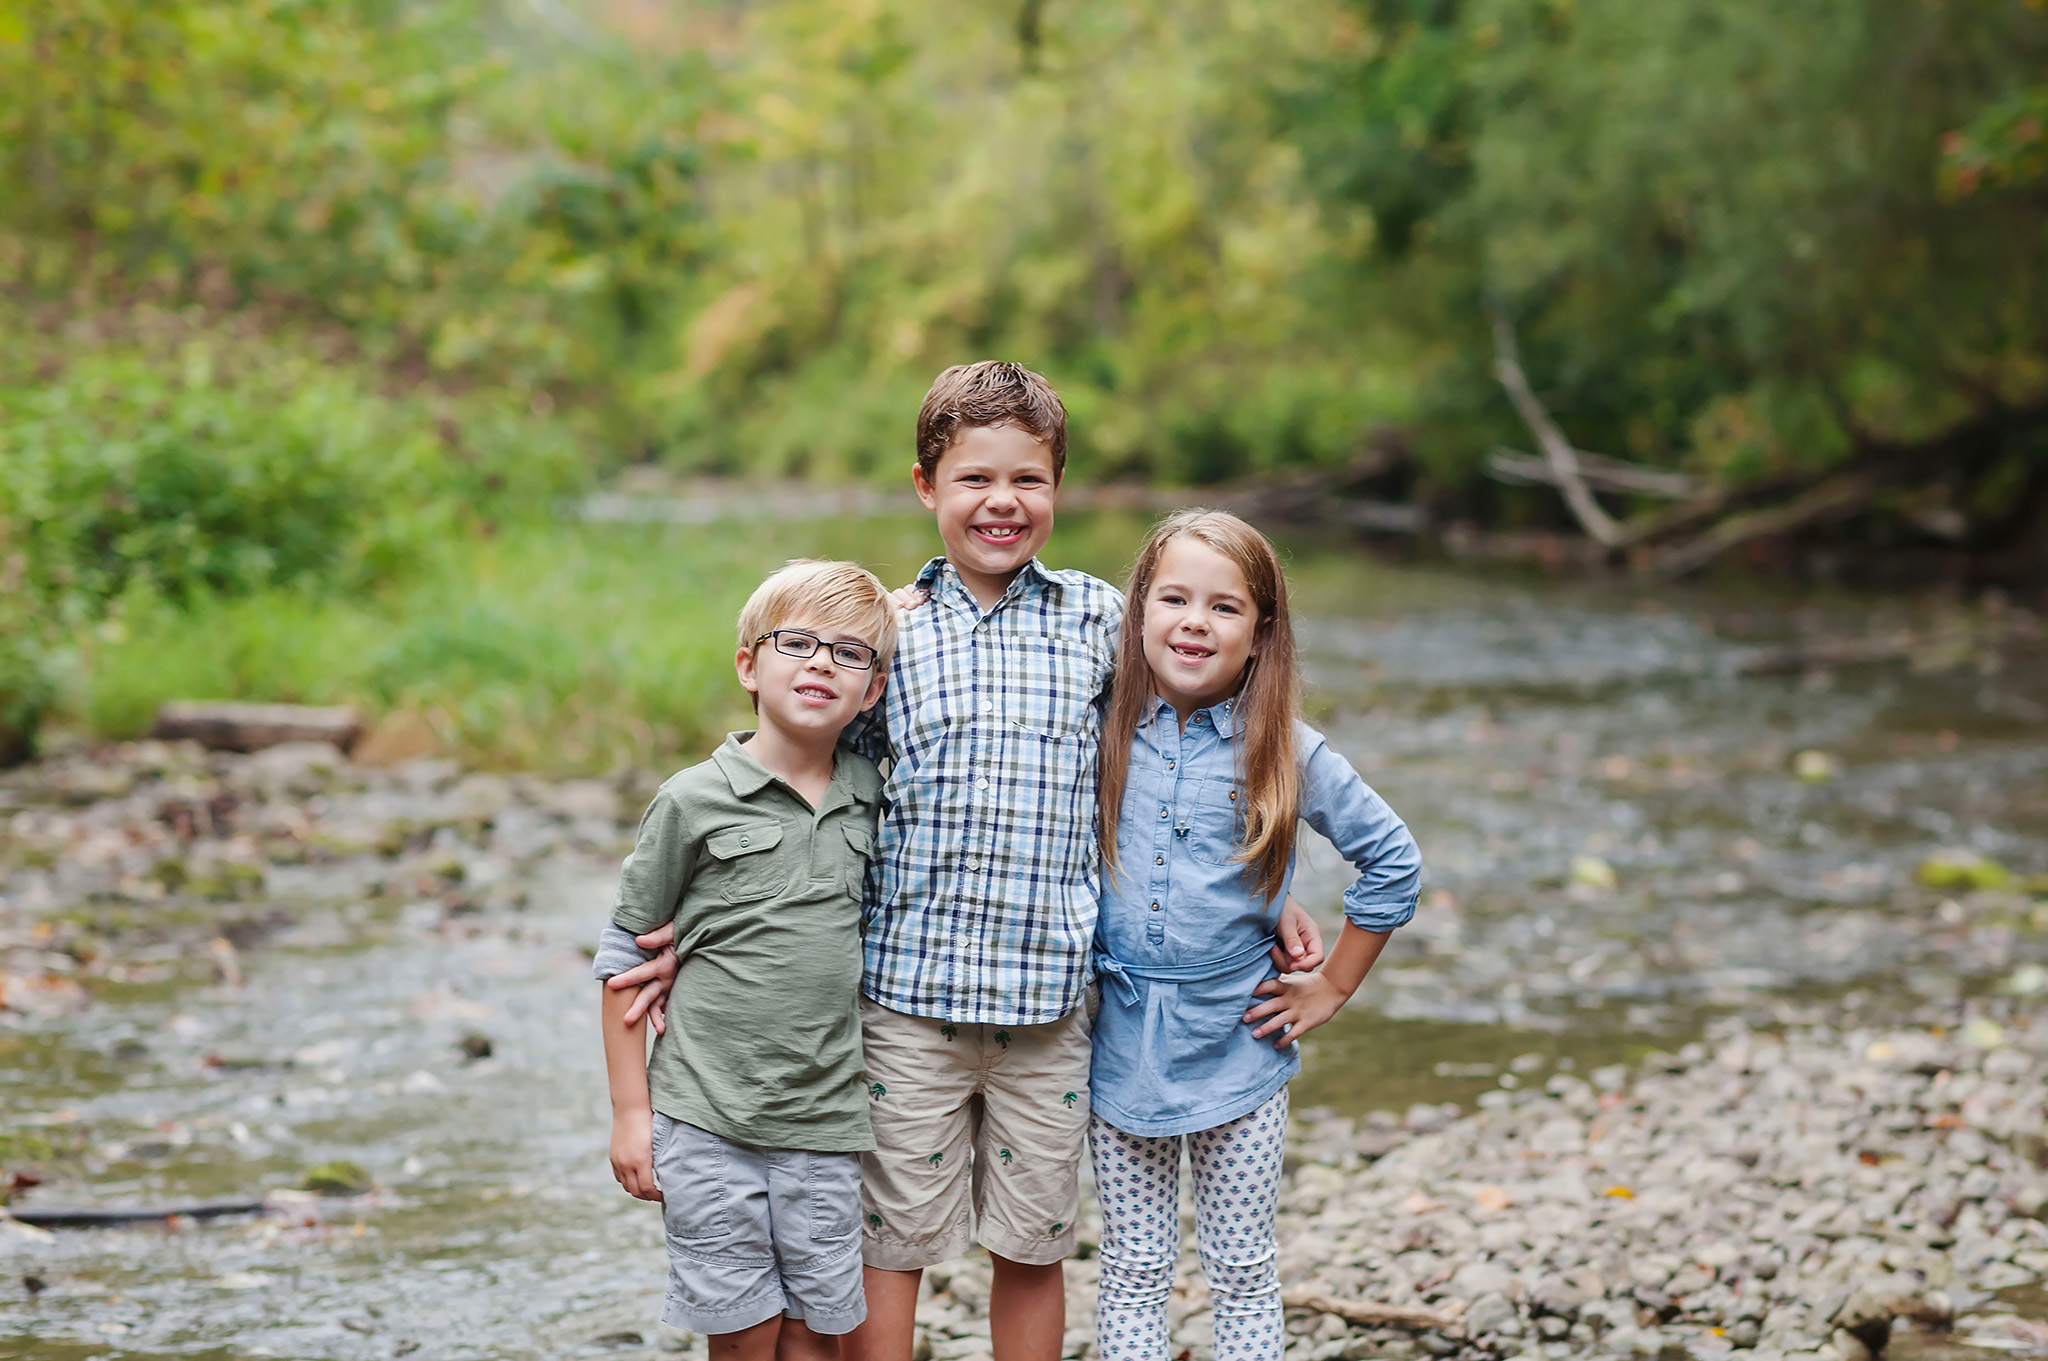 london_ontario_family_photographer-medway_creek-raw_footage_photography011.jpg